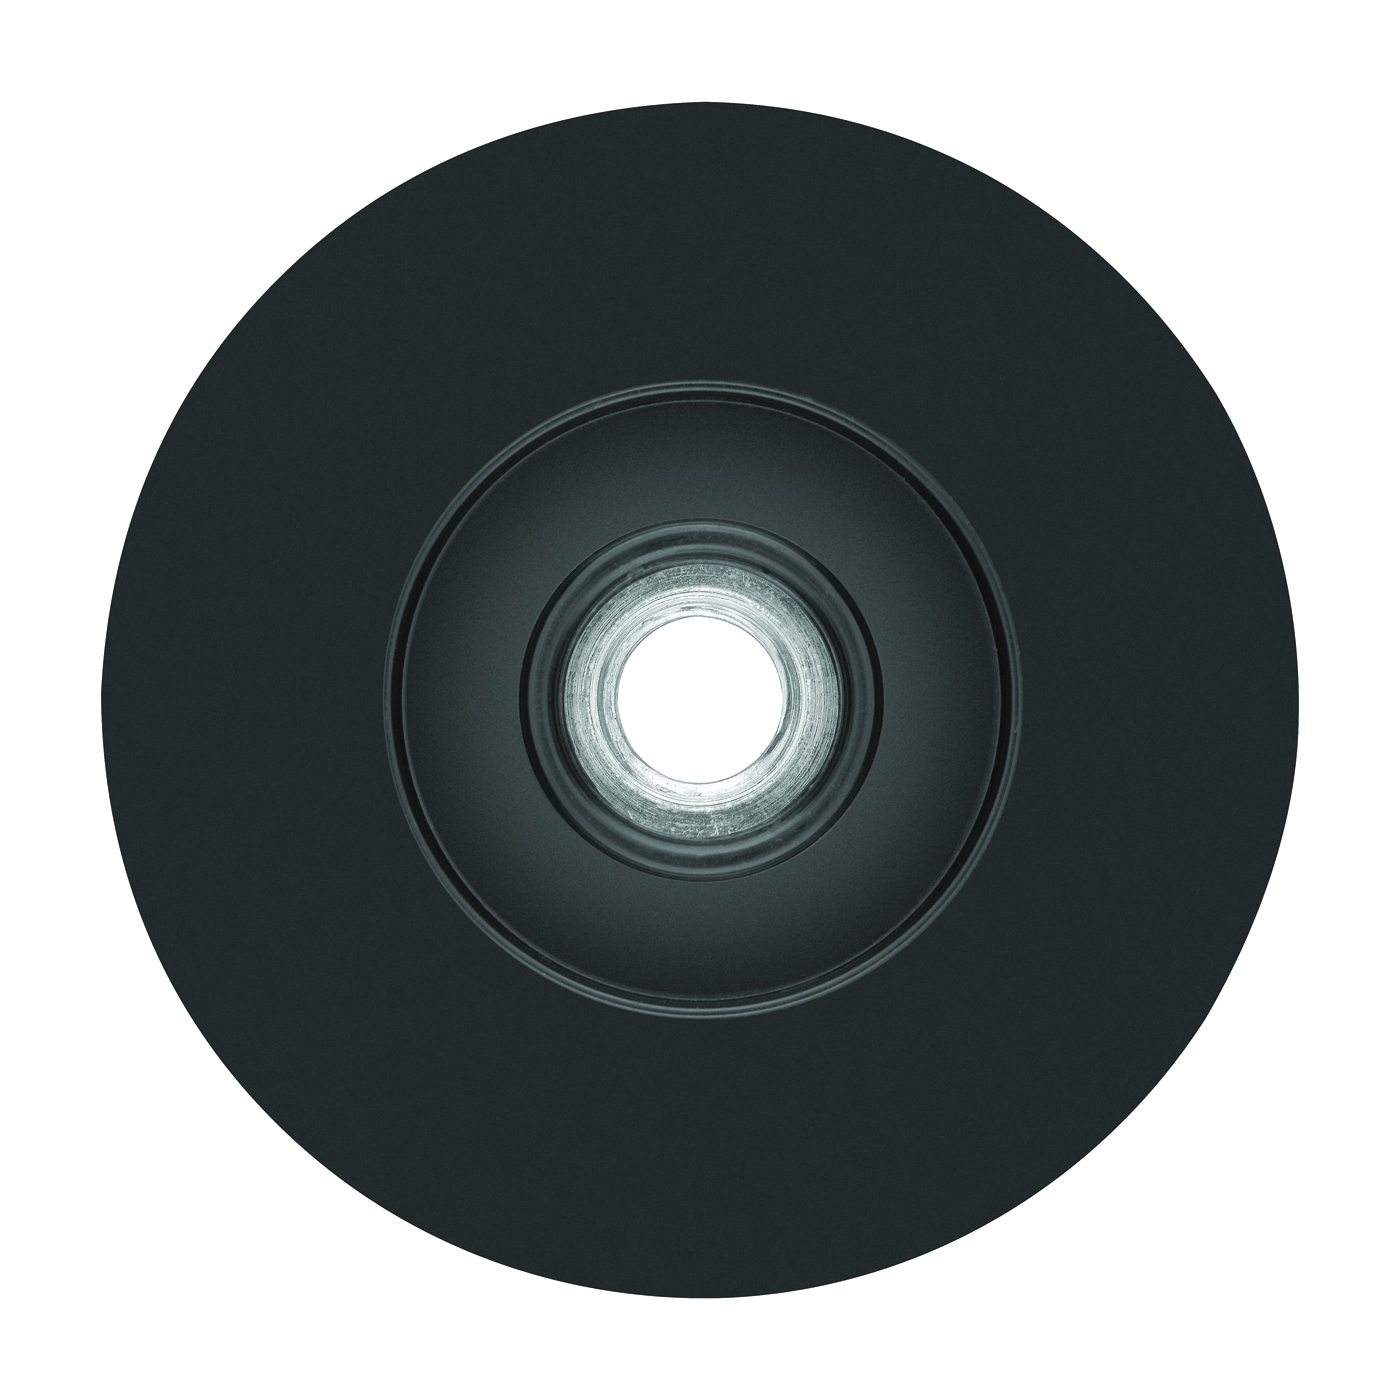 Picture of DeWALT DW4945 Fiber Disc Backing Pad, 4-1/2 in Dia, 5/8 in Arbor/Shank, Rubber